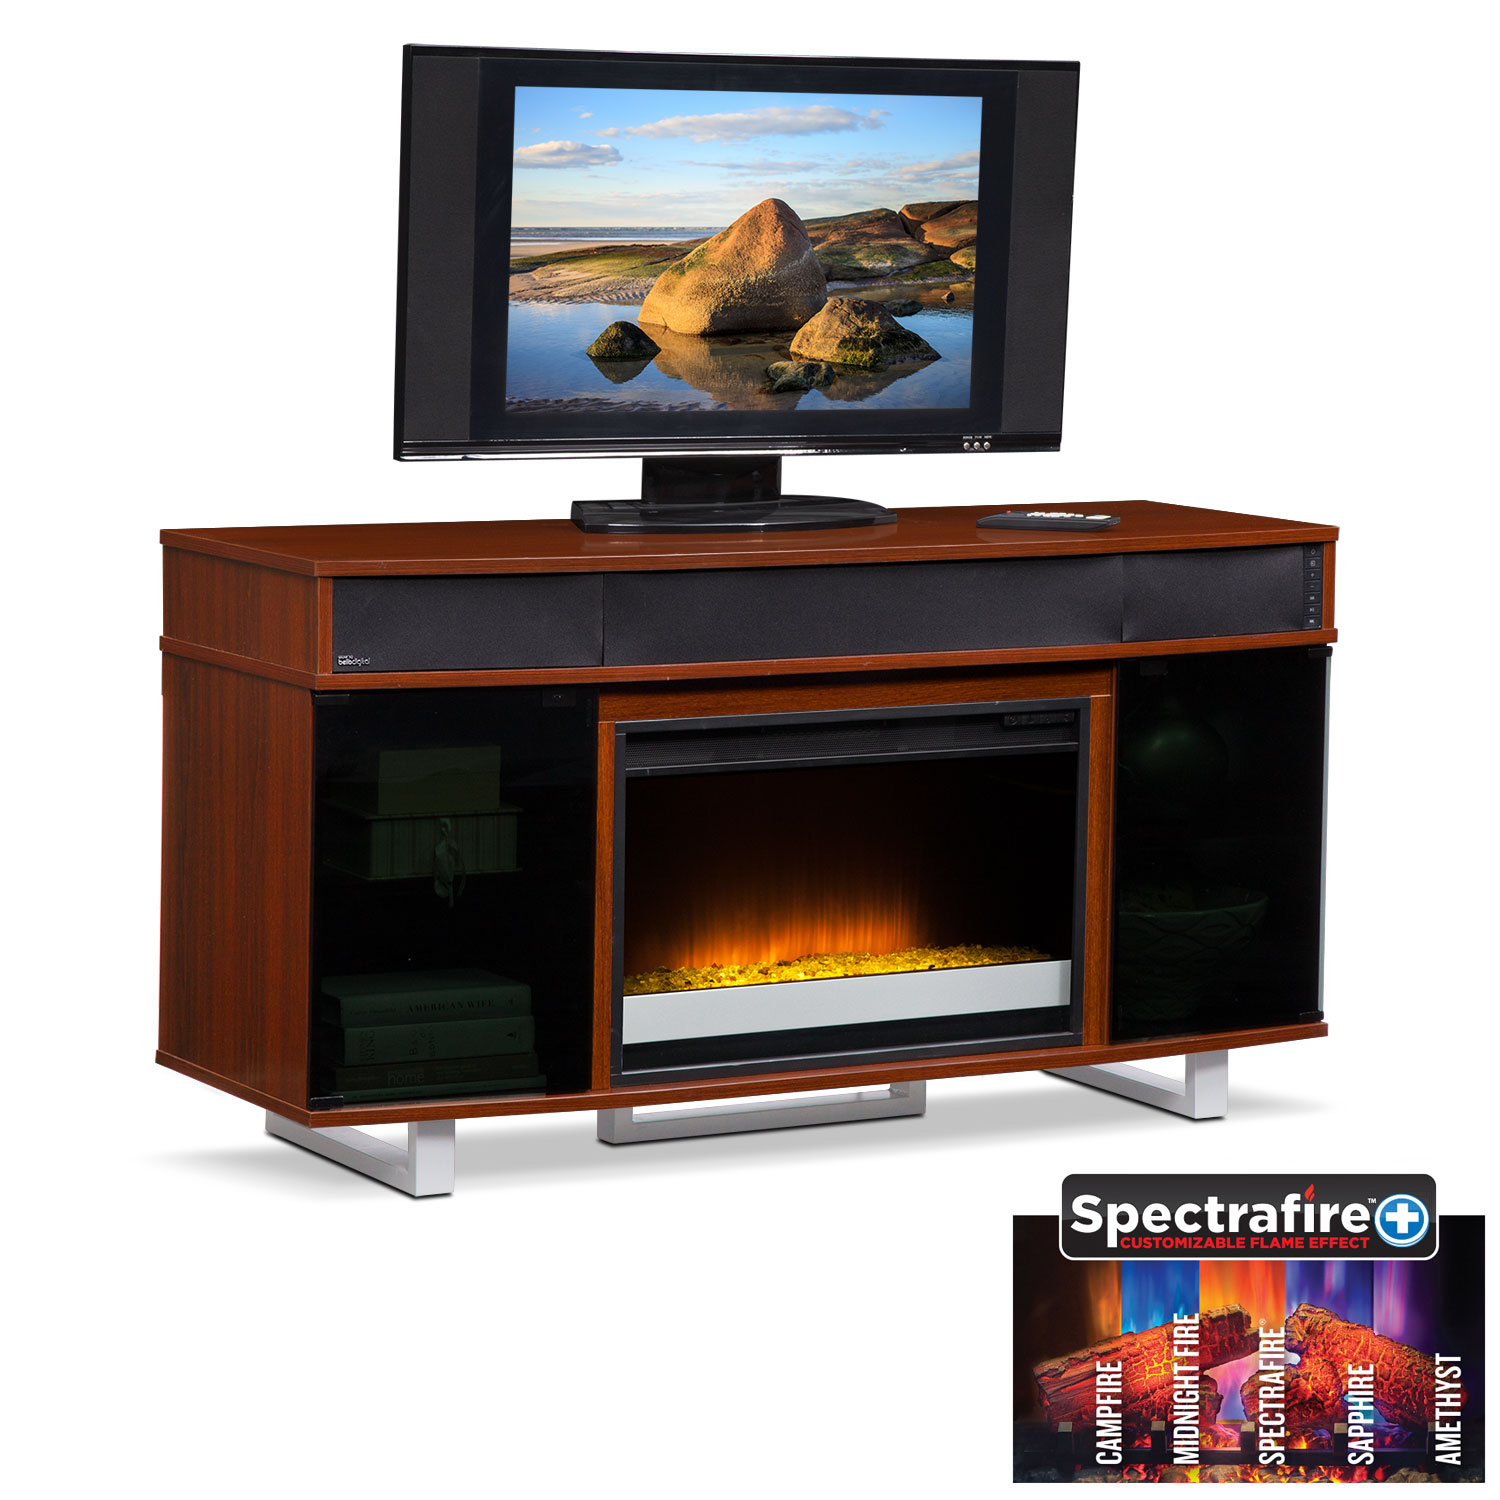 "Pacer 56"" Contemporary Fireplace TV Stand with Sound Bar  - Cherry"